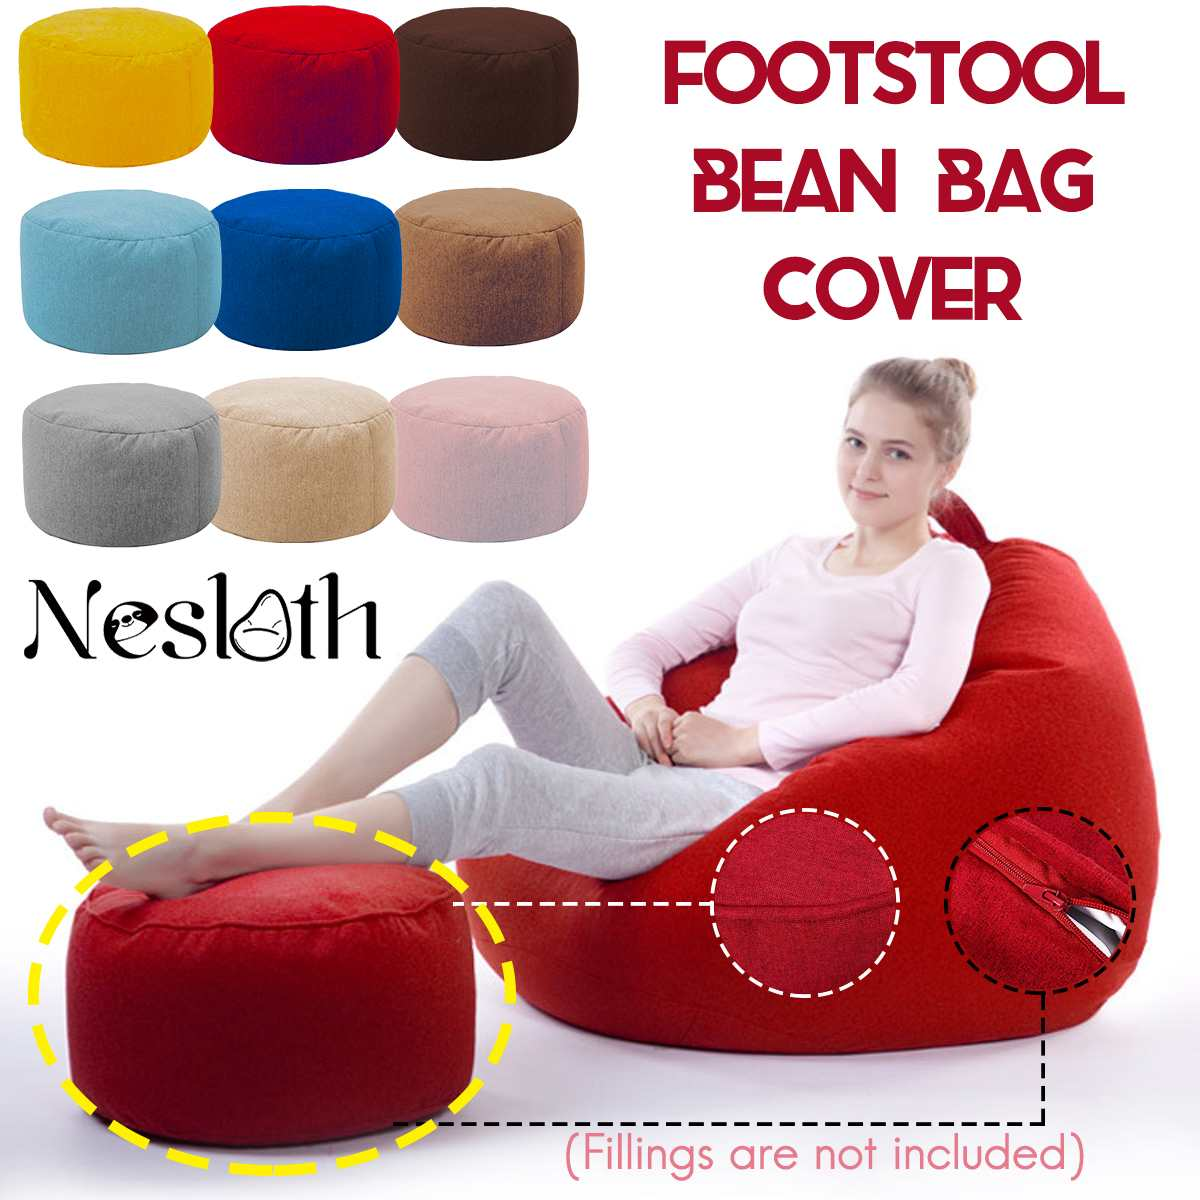 Nesloth Small Round Beanbag Sofas Cover without Filler Upholstered Velvet Footstool Chair Pouf Puff Couch Tatami Living Room New|Bean Bag Sofas| |  - title=